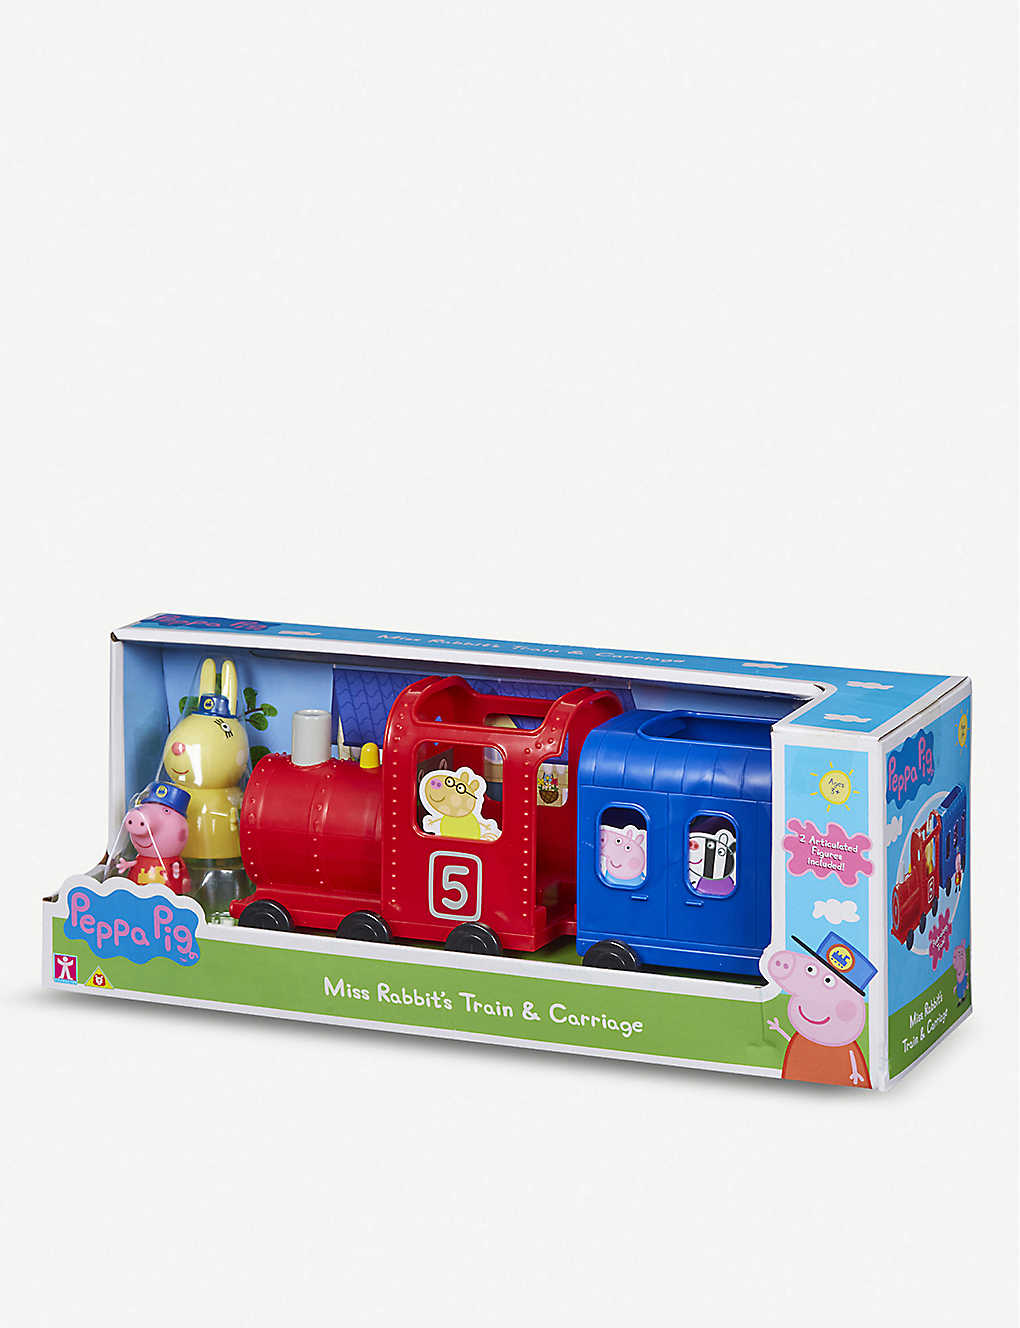 PEPPA PIG: Miss Rabbits Train and Carriage Toy